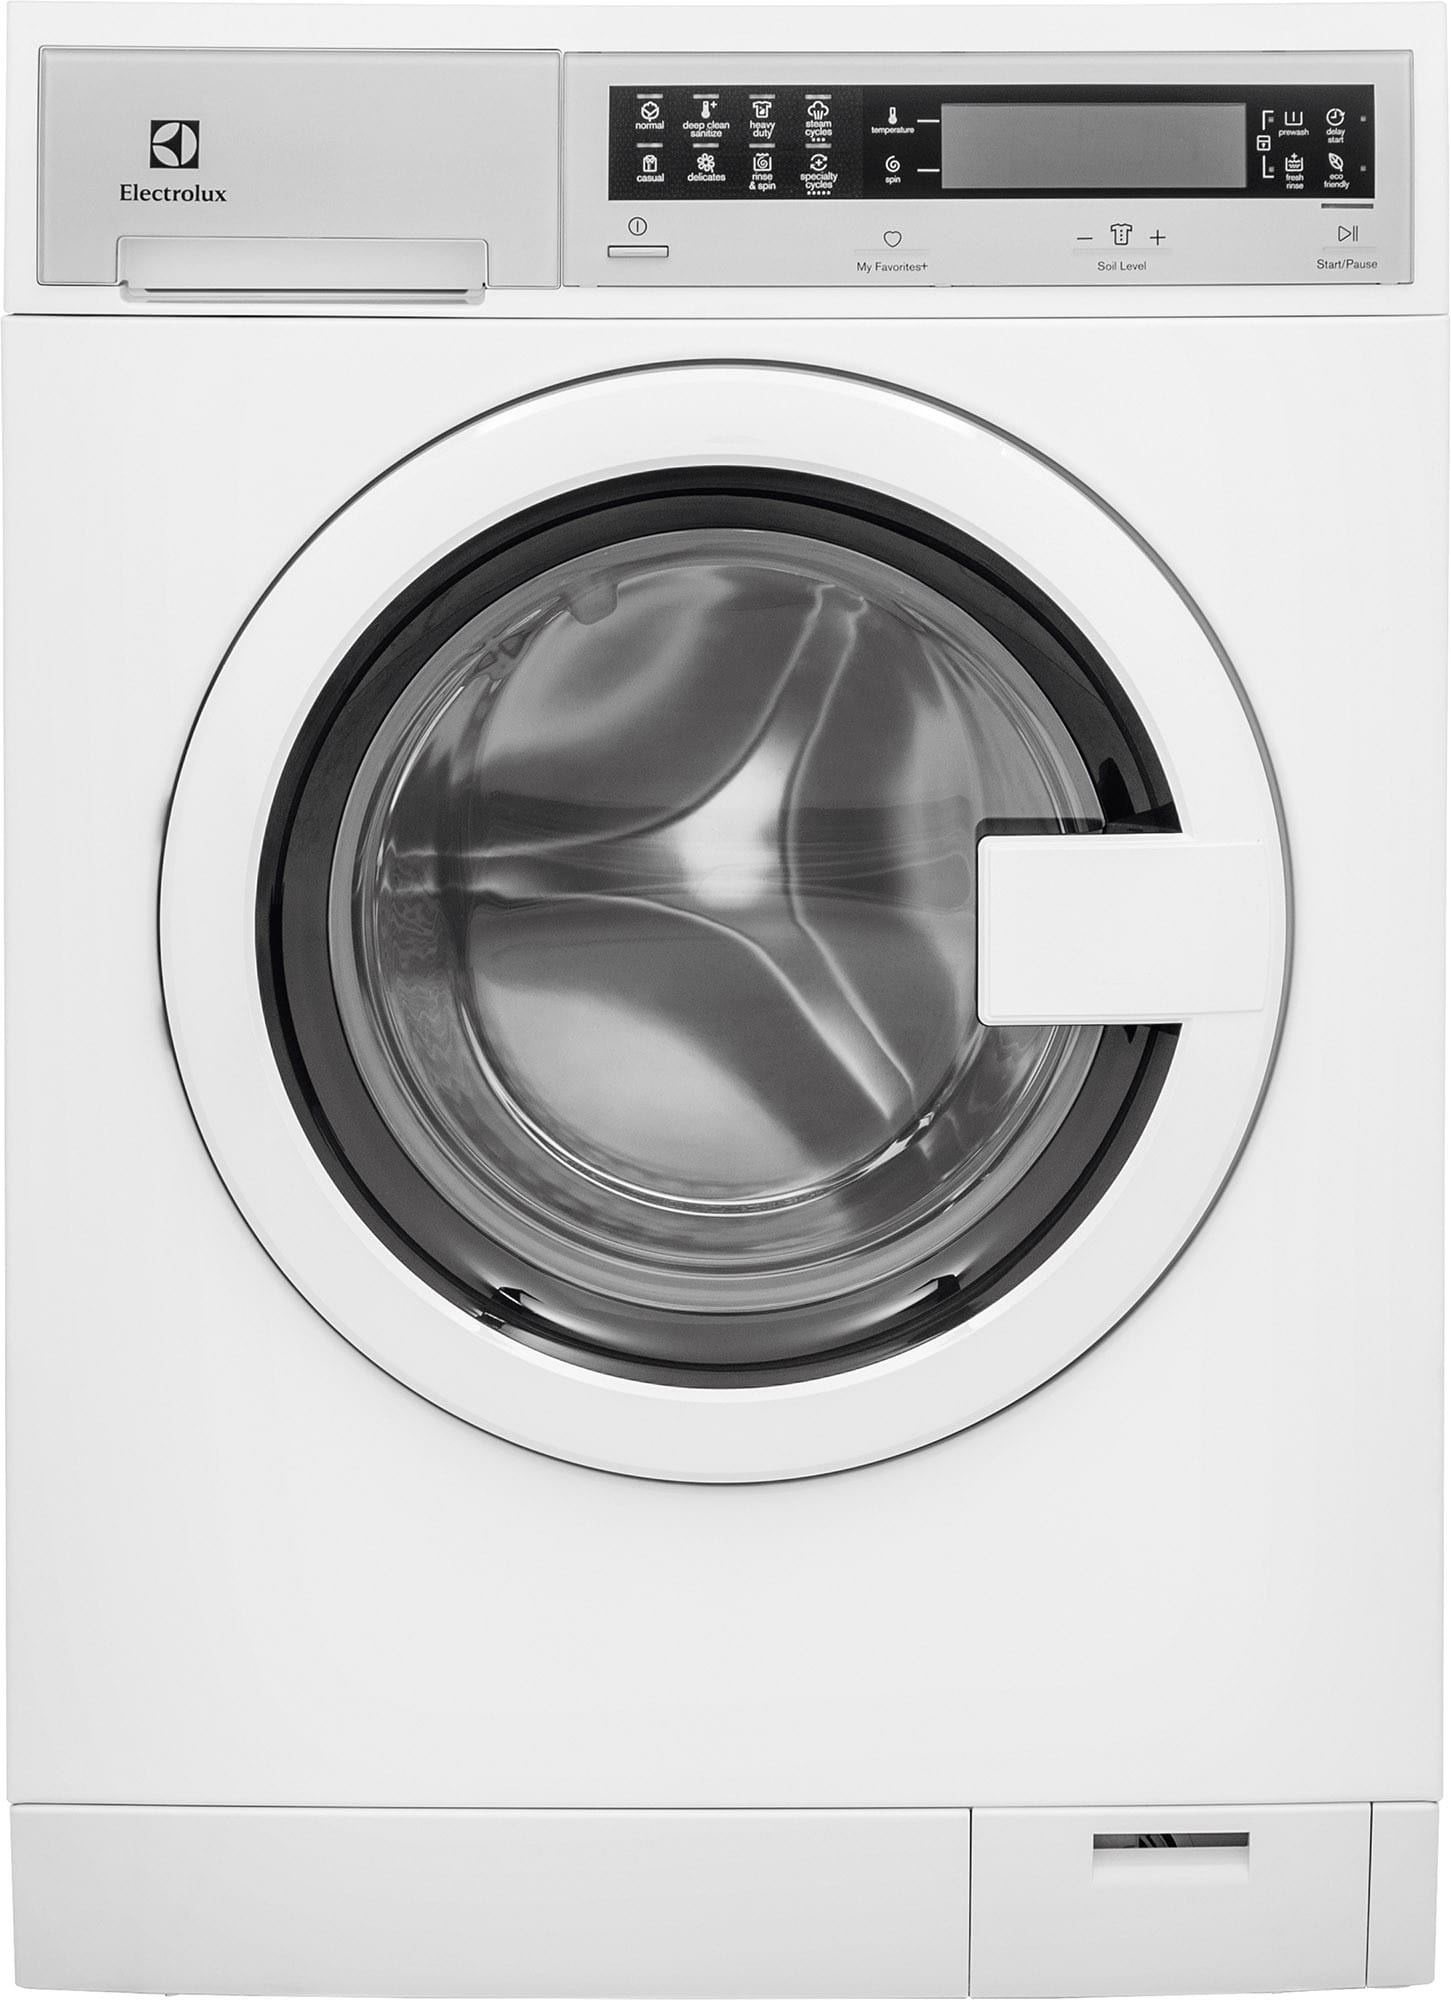 Electrolux EFLS210TIW 24 Inch Front Load Washer with Perfect Steam™,  ExpertCare™ Wash, IQ-Touch™ Controls, Fast Wash, Sanitized, Luxury-Quiet™,  Automatic ...